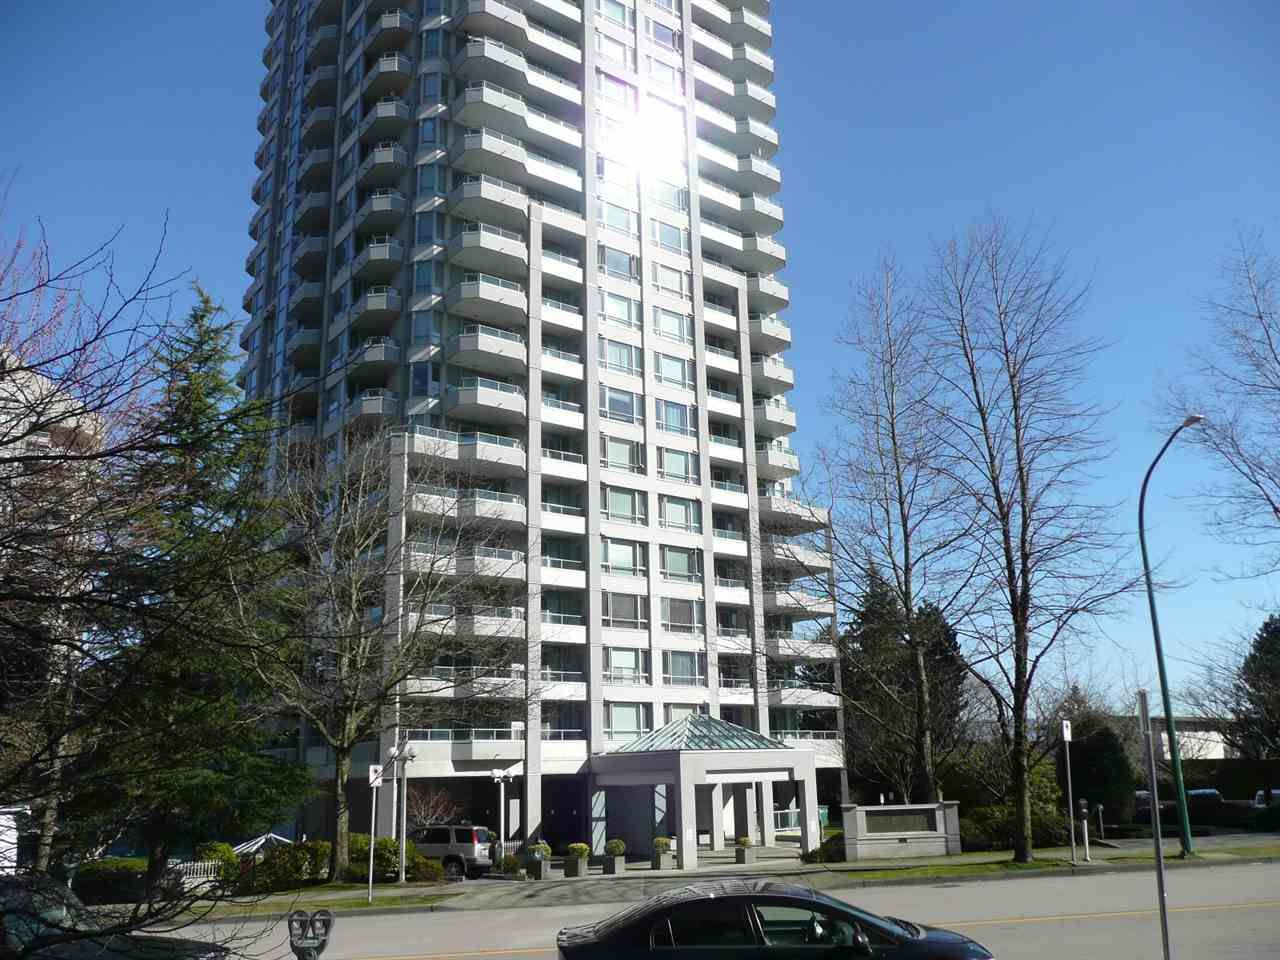 """Main Photo: 1900 4825 HAZEL Street in Burnaby: Forest Glen BS Condo for sale in """"THE EVERGREEN"""" (Burnaby South)  : MLS®# R2554799"""